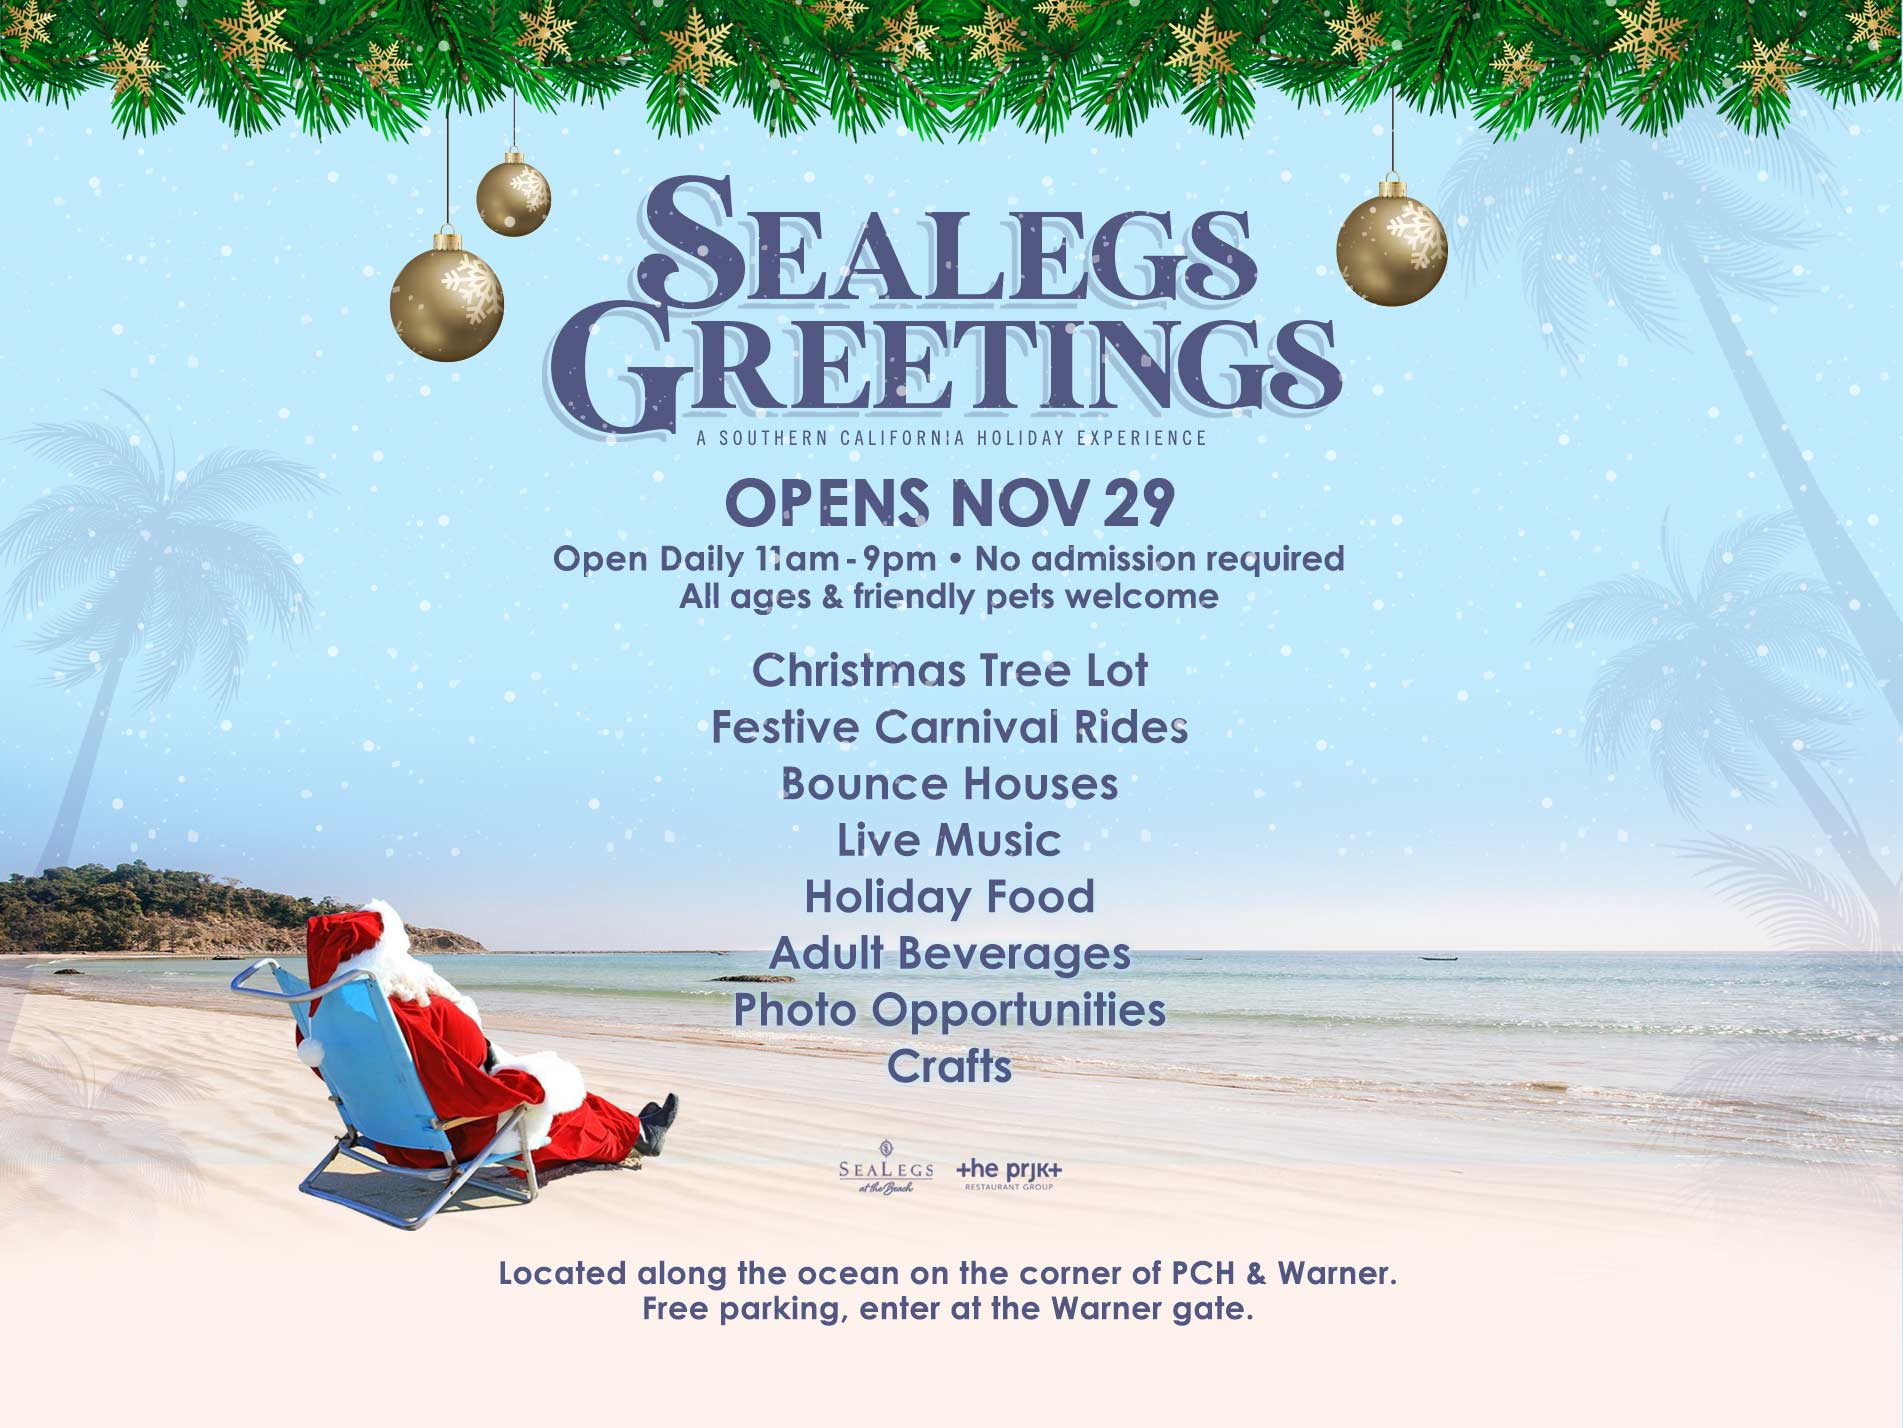 Sealegs Greetings